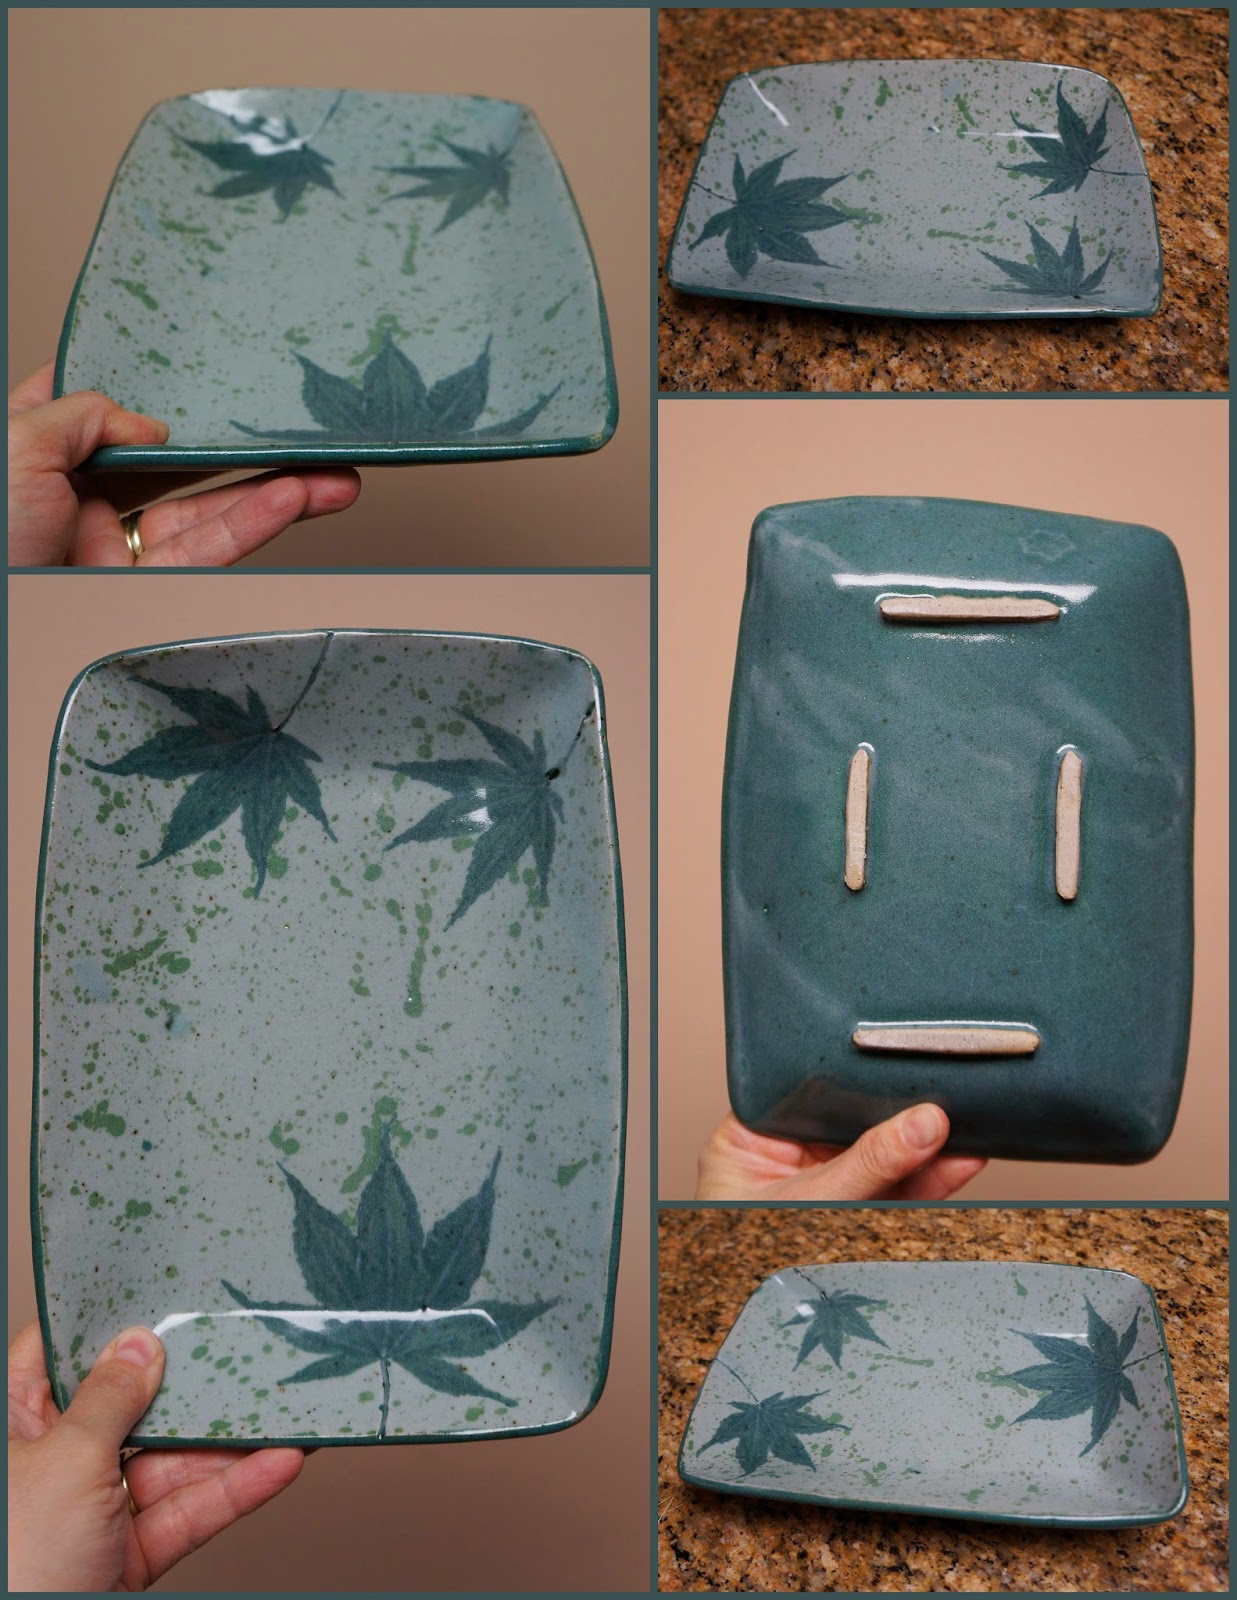 Handmade ceramic stoneware pottery dish with pressed maple leaf design.